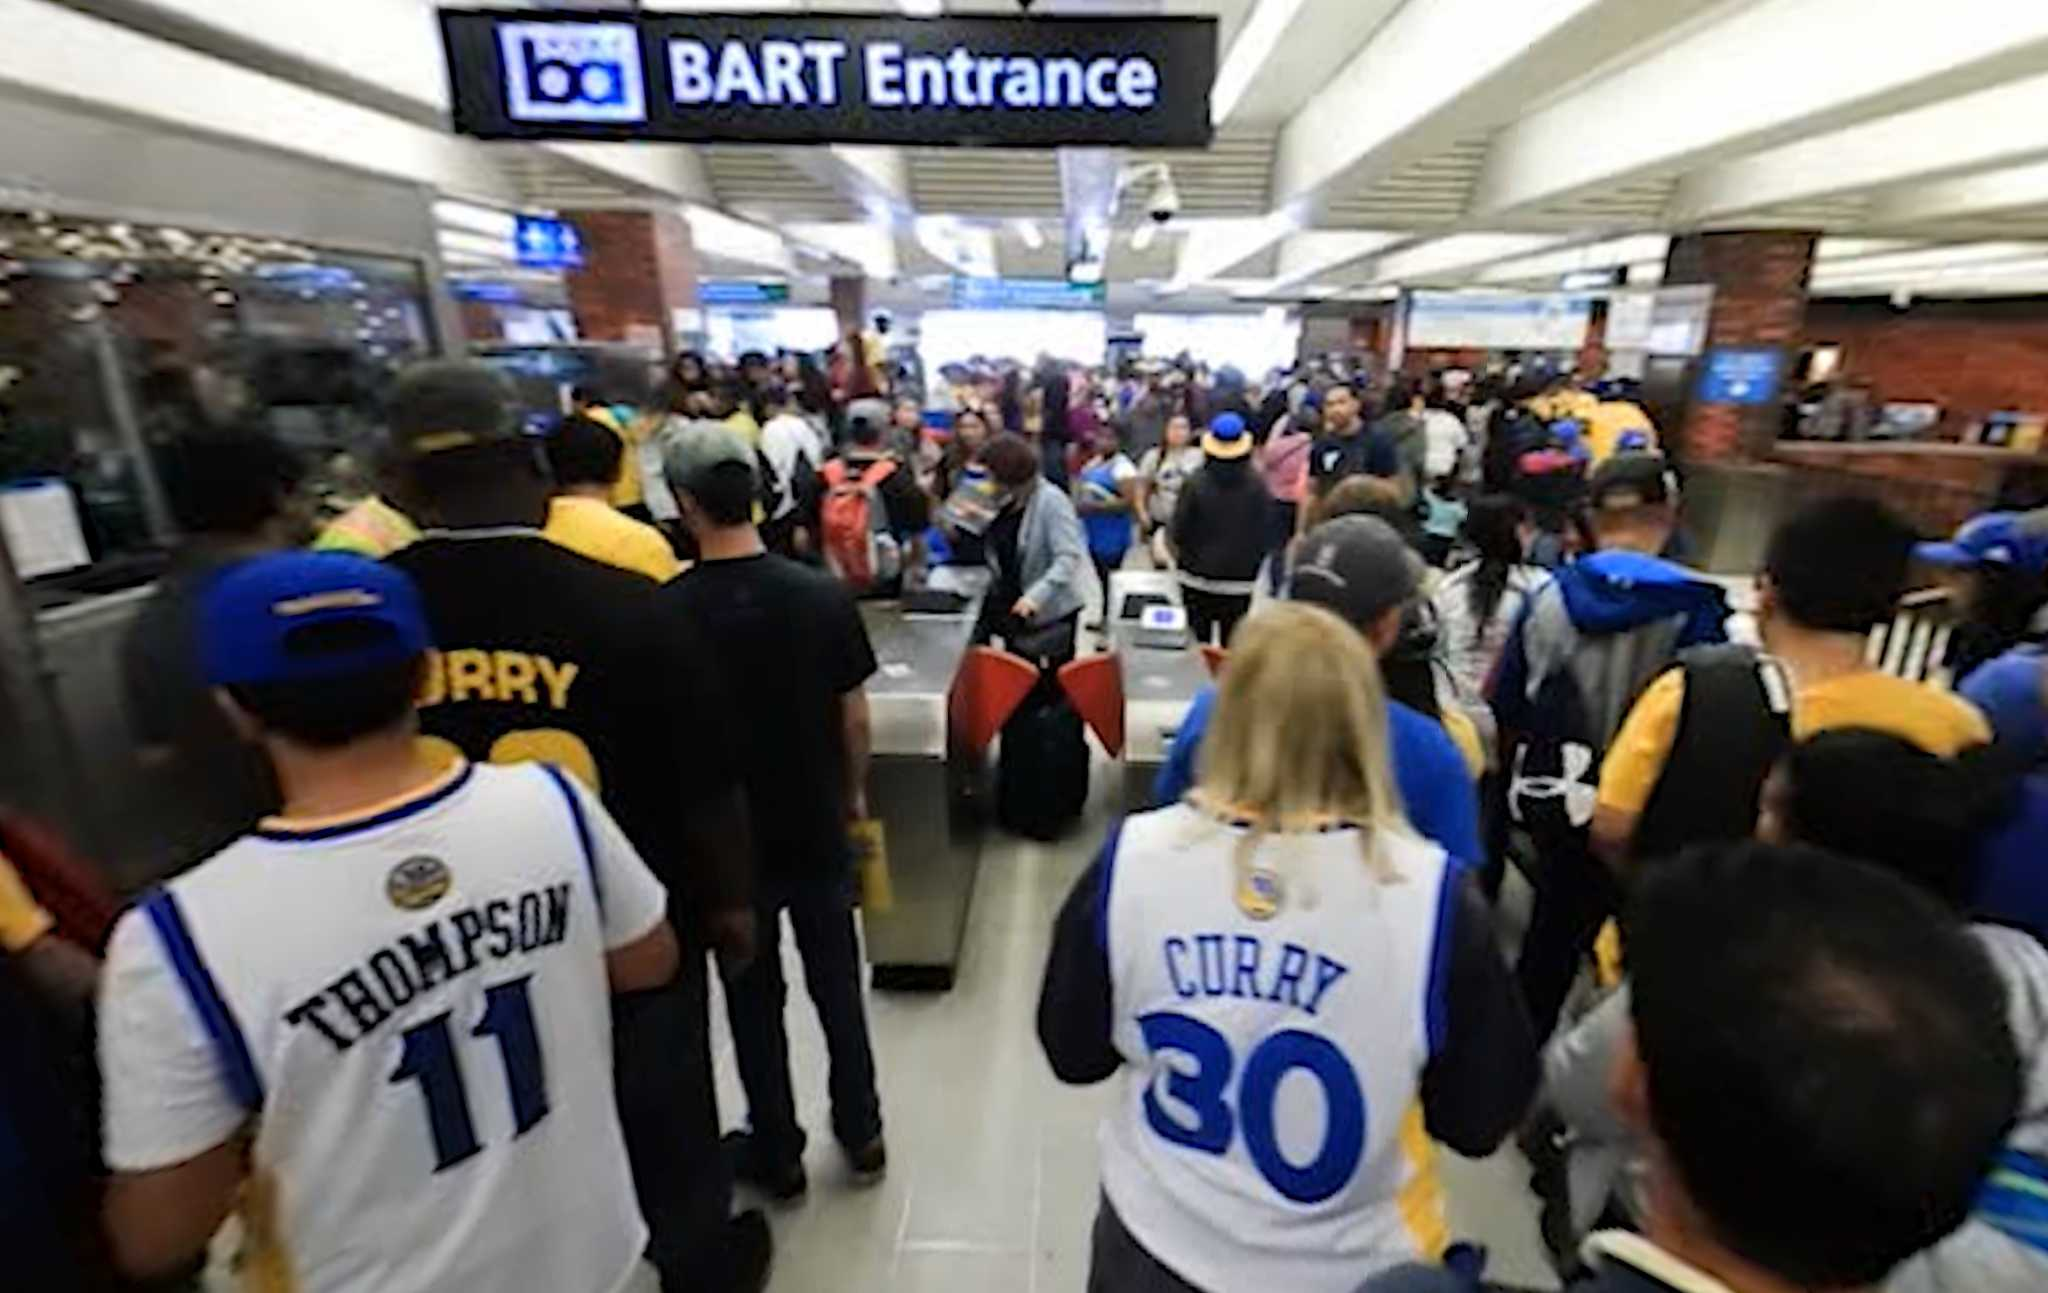 BART Warriors Parade